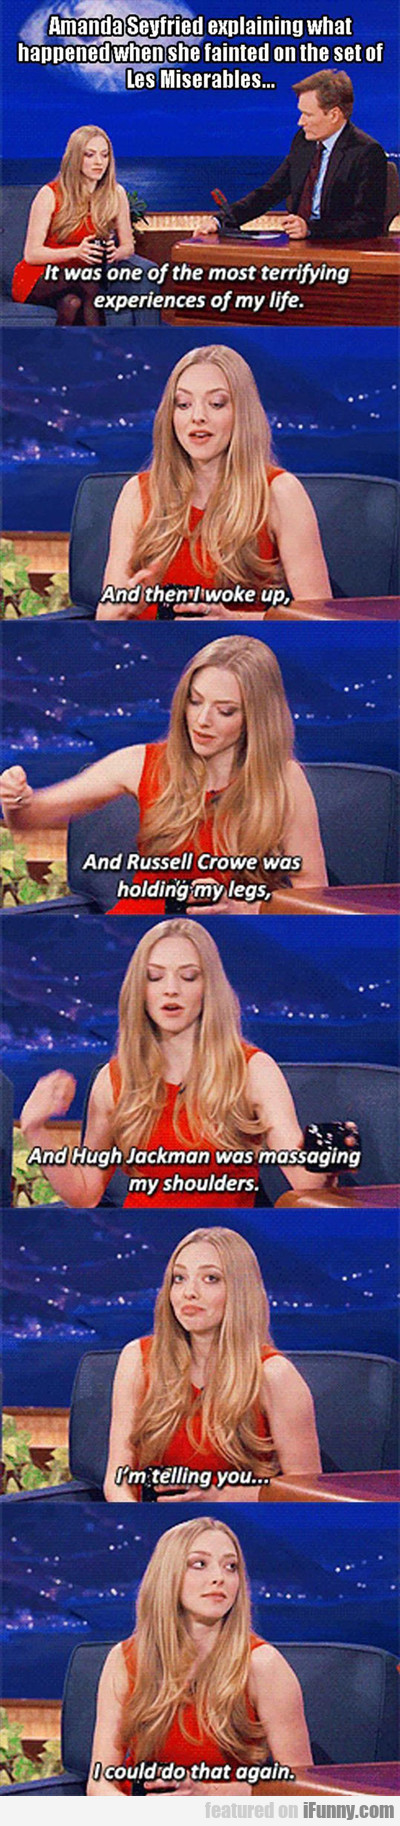 Amanda Seyfried Explaining What Happened...